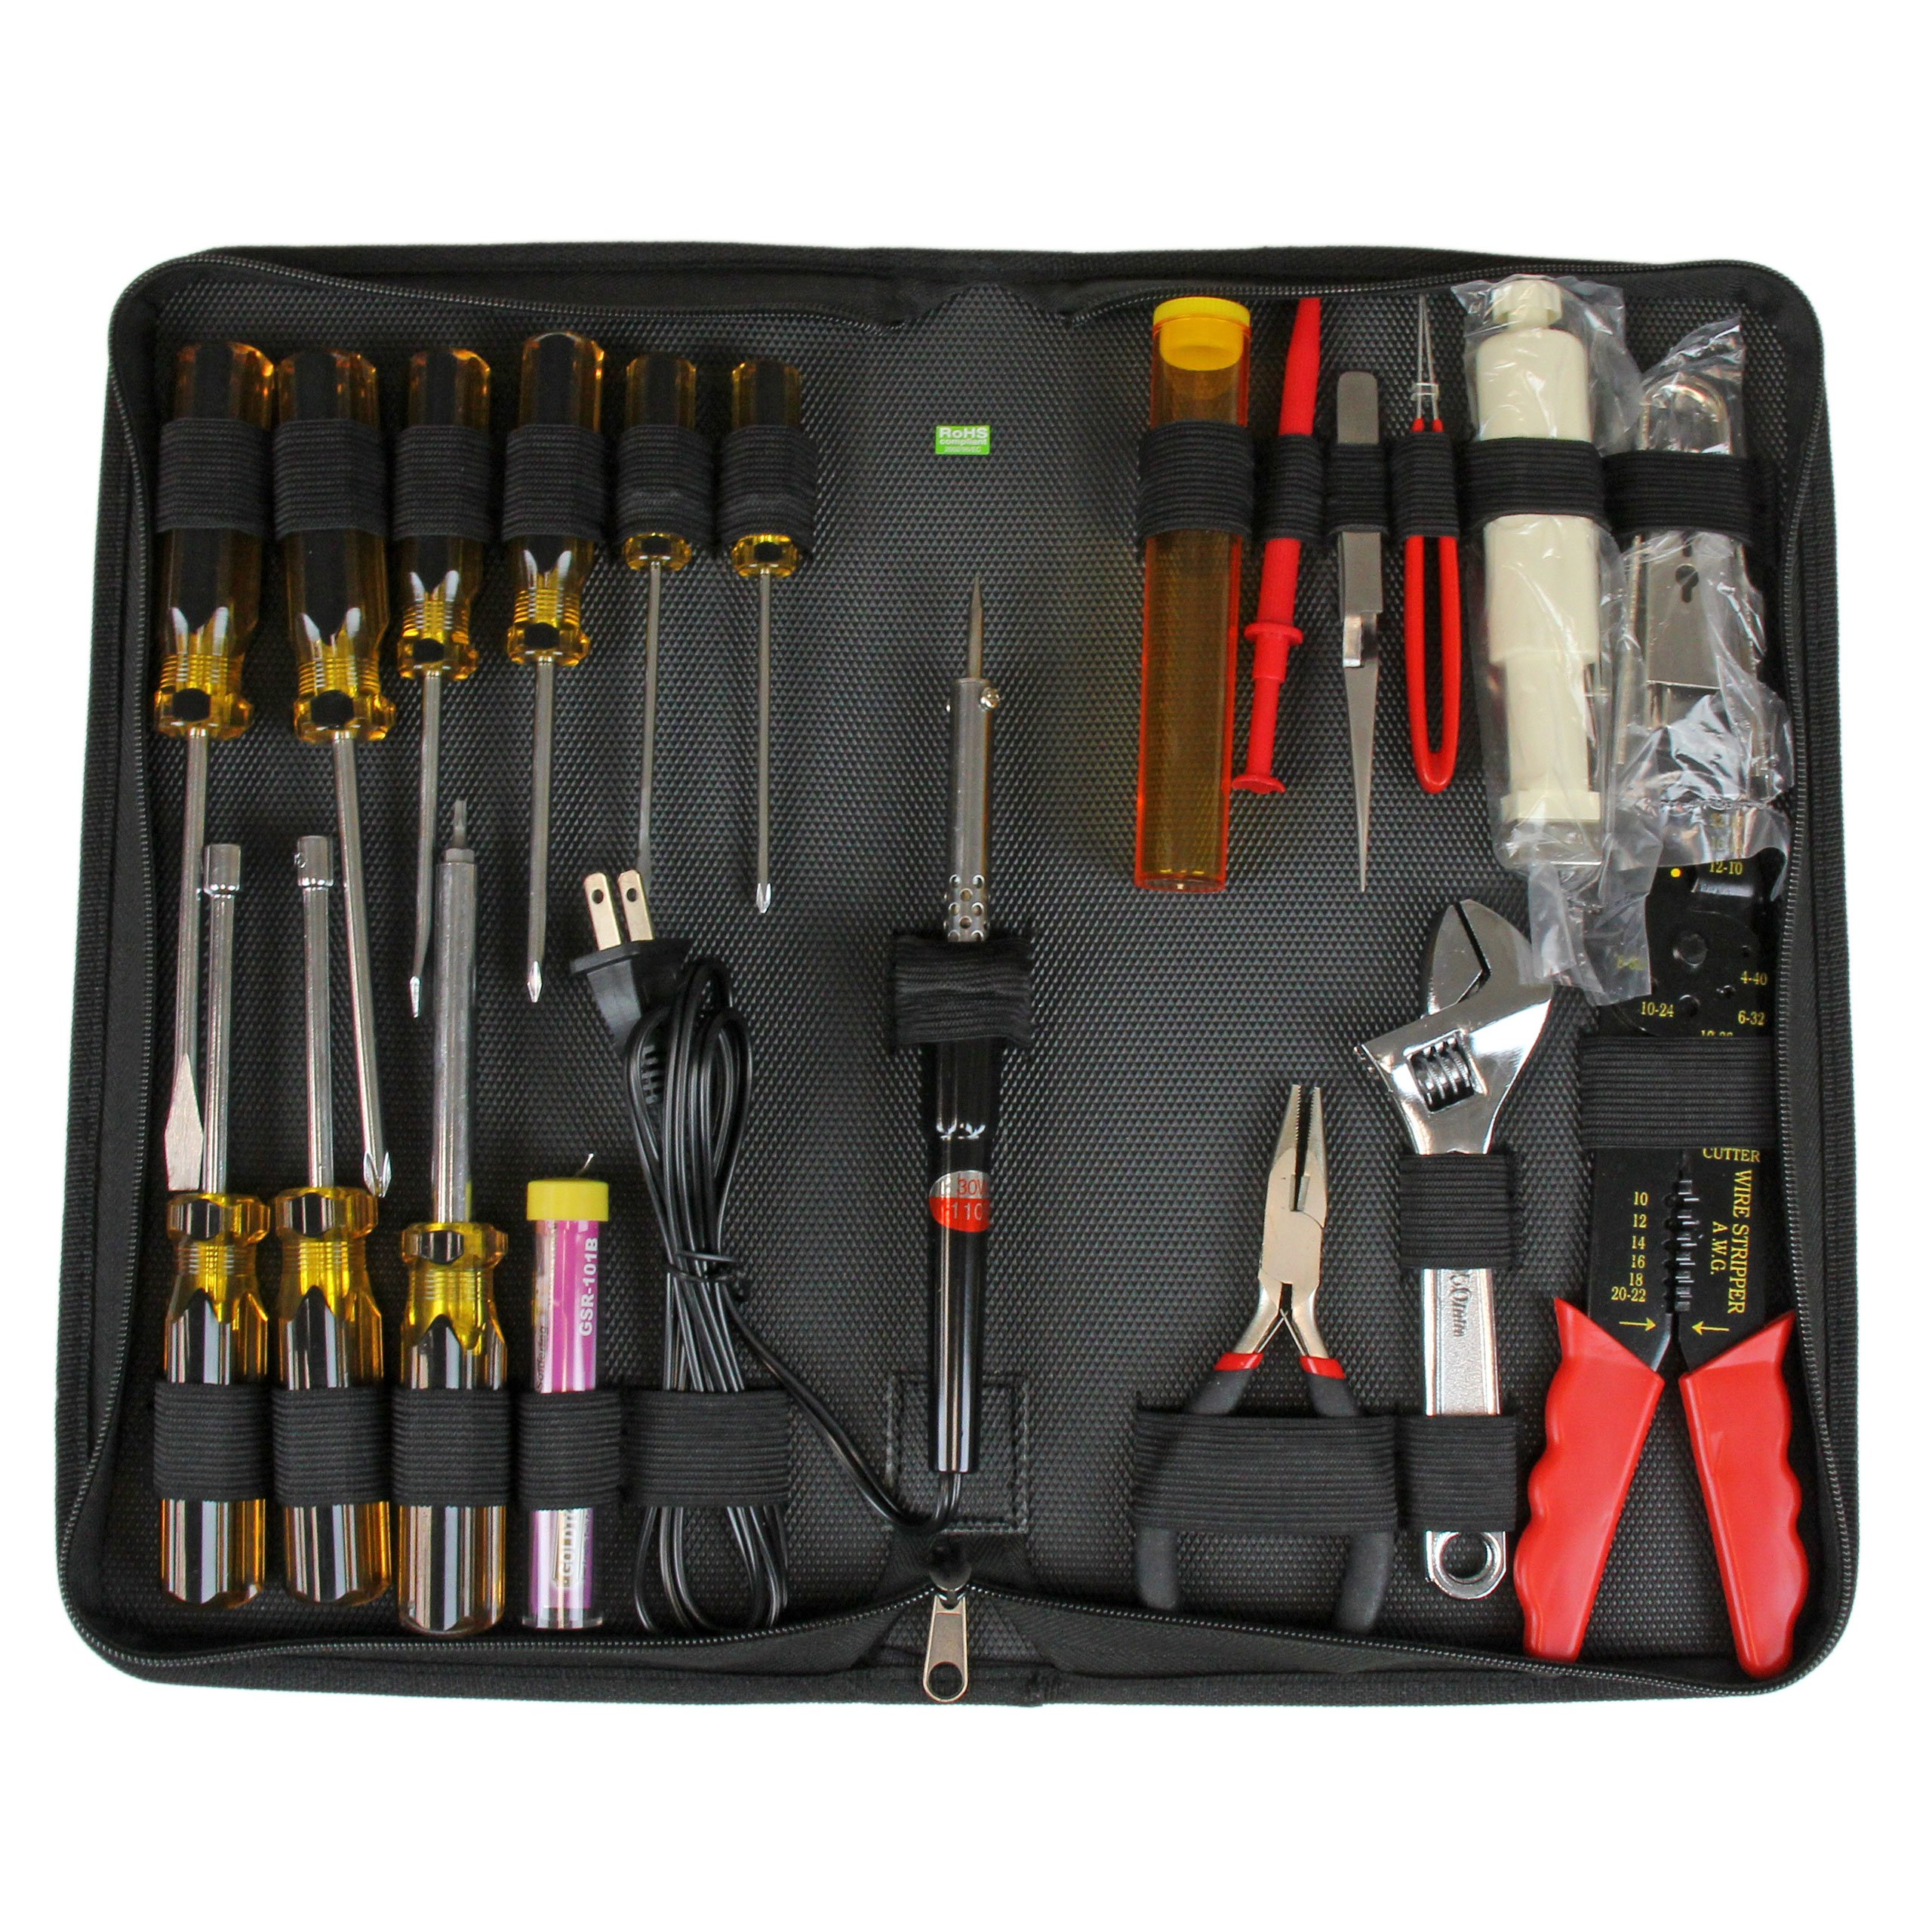 StarTech.com 19 Piece Computer Took Kit in a Carrying Case - Tool kit - CTK500 by StarTech